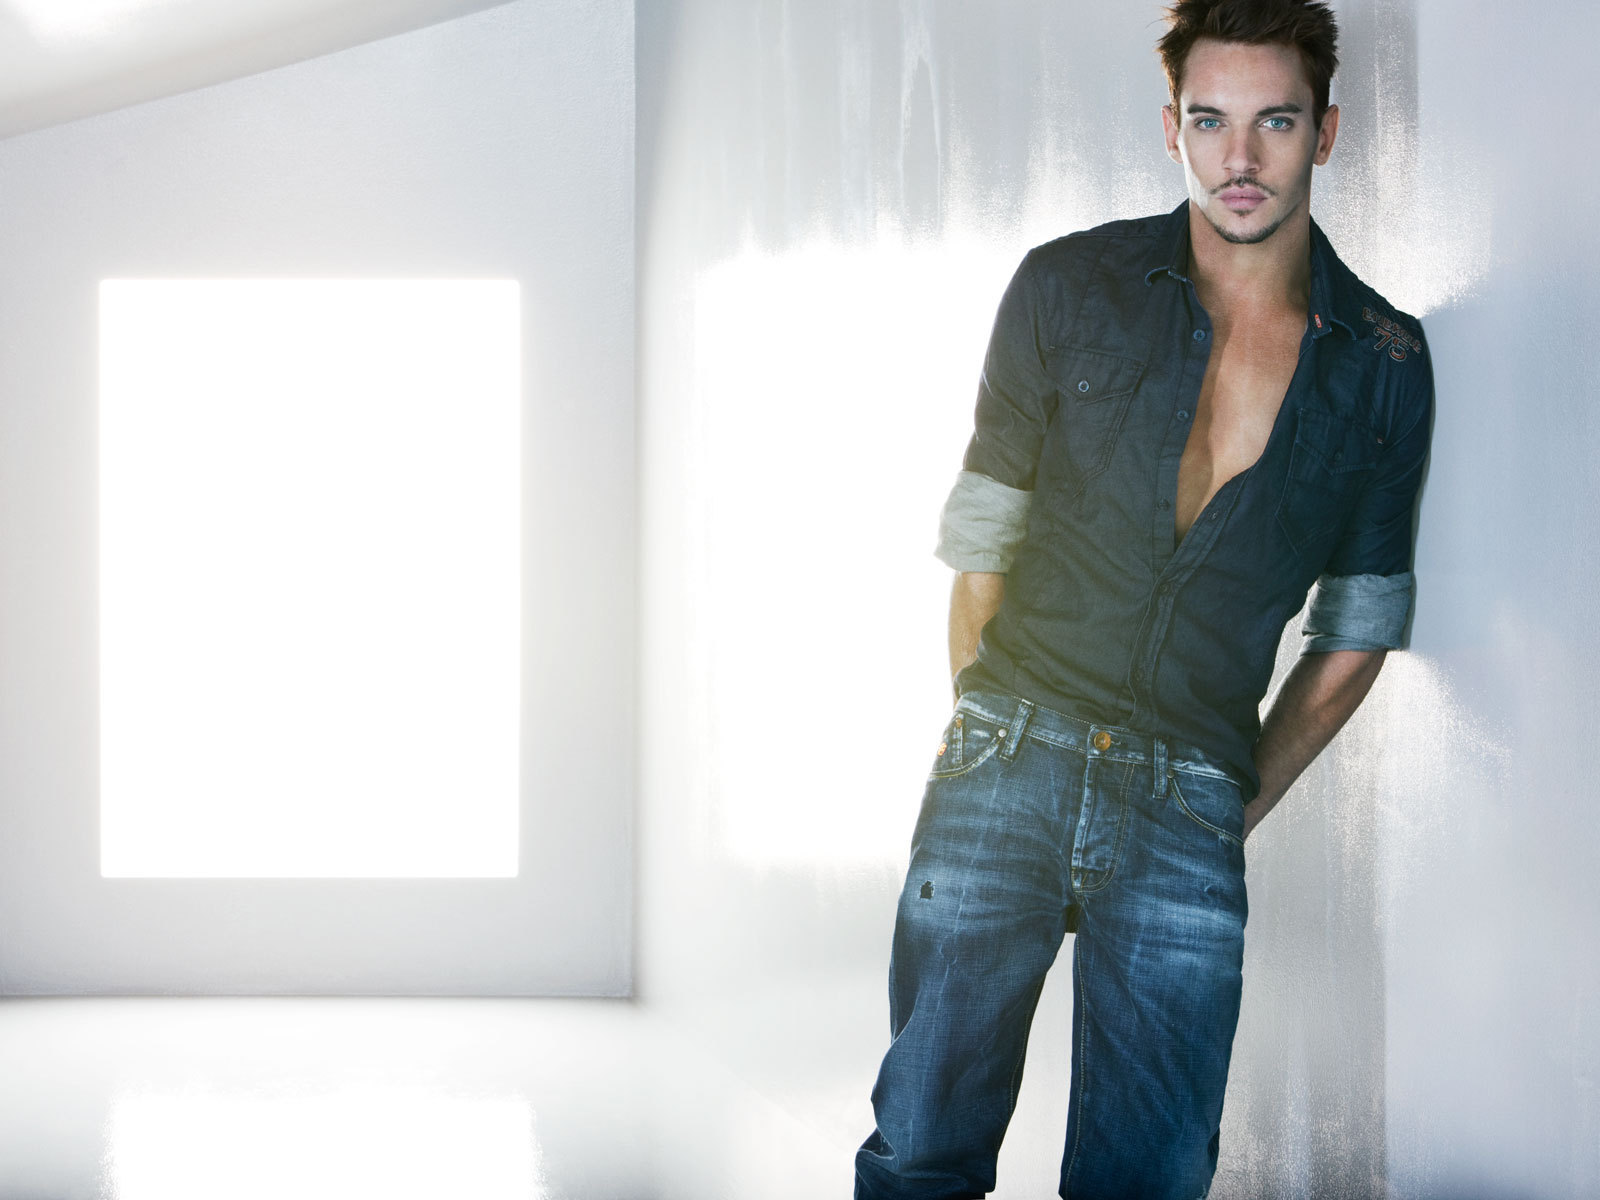 jonathan rhys meyers wallpaper photos 58934